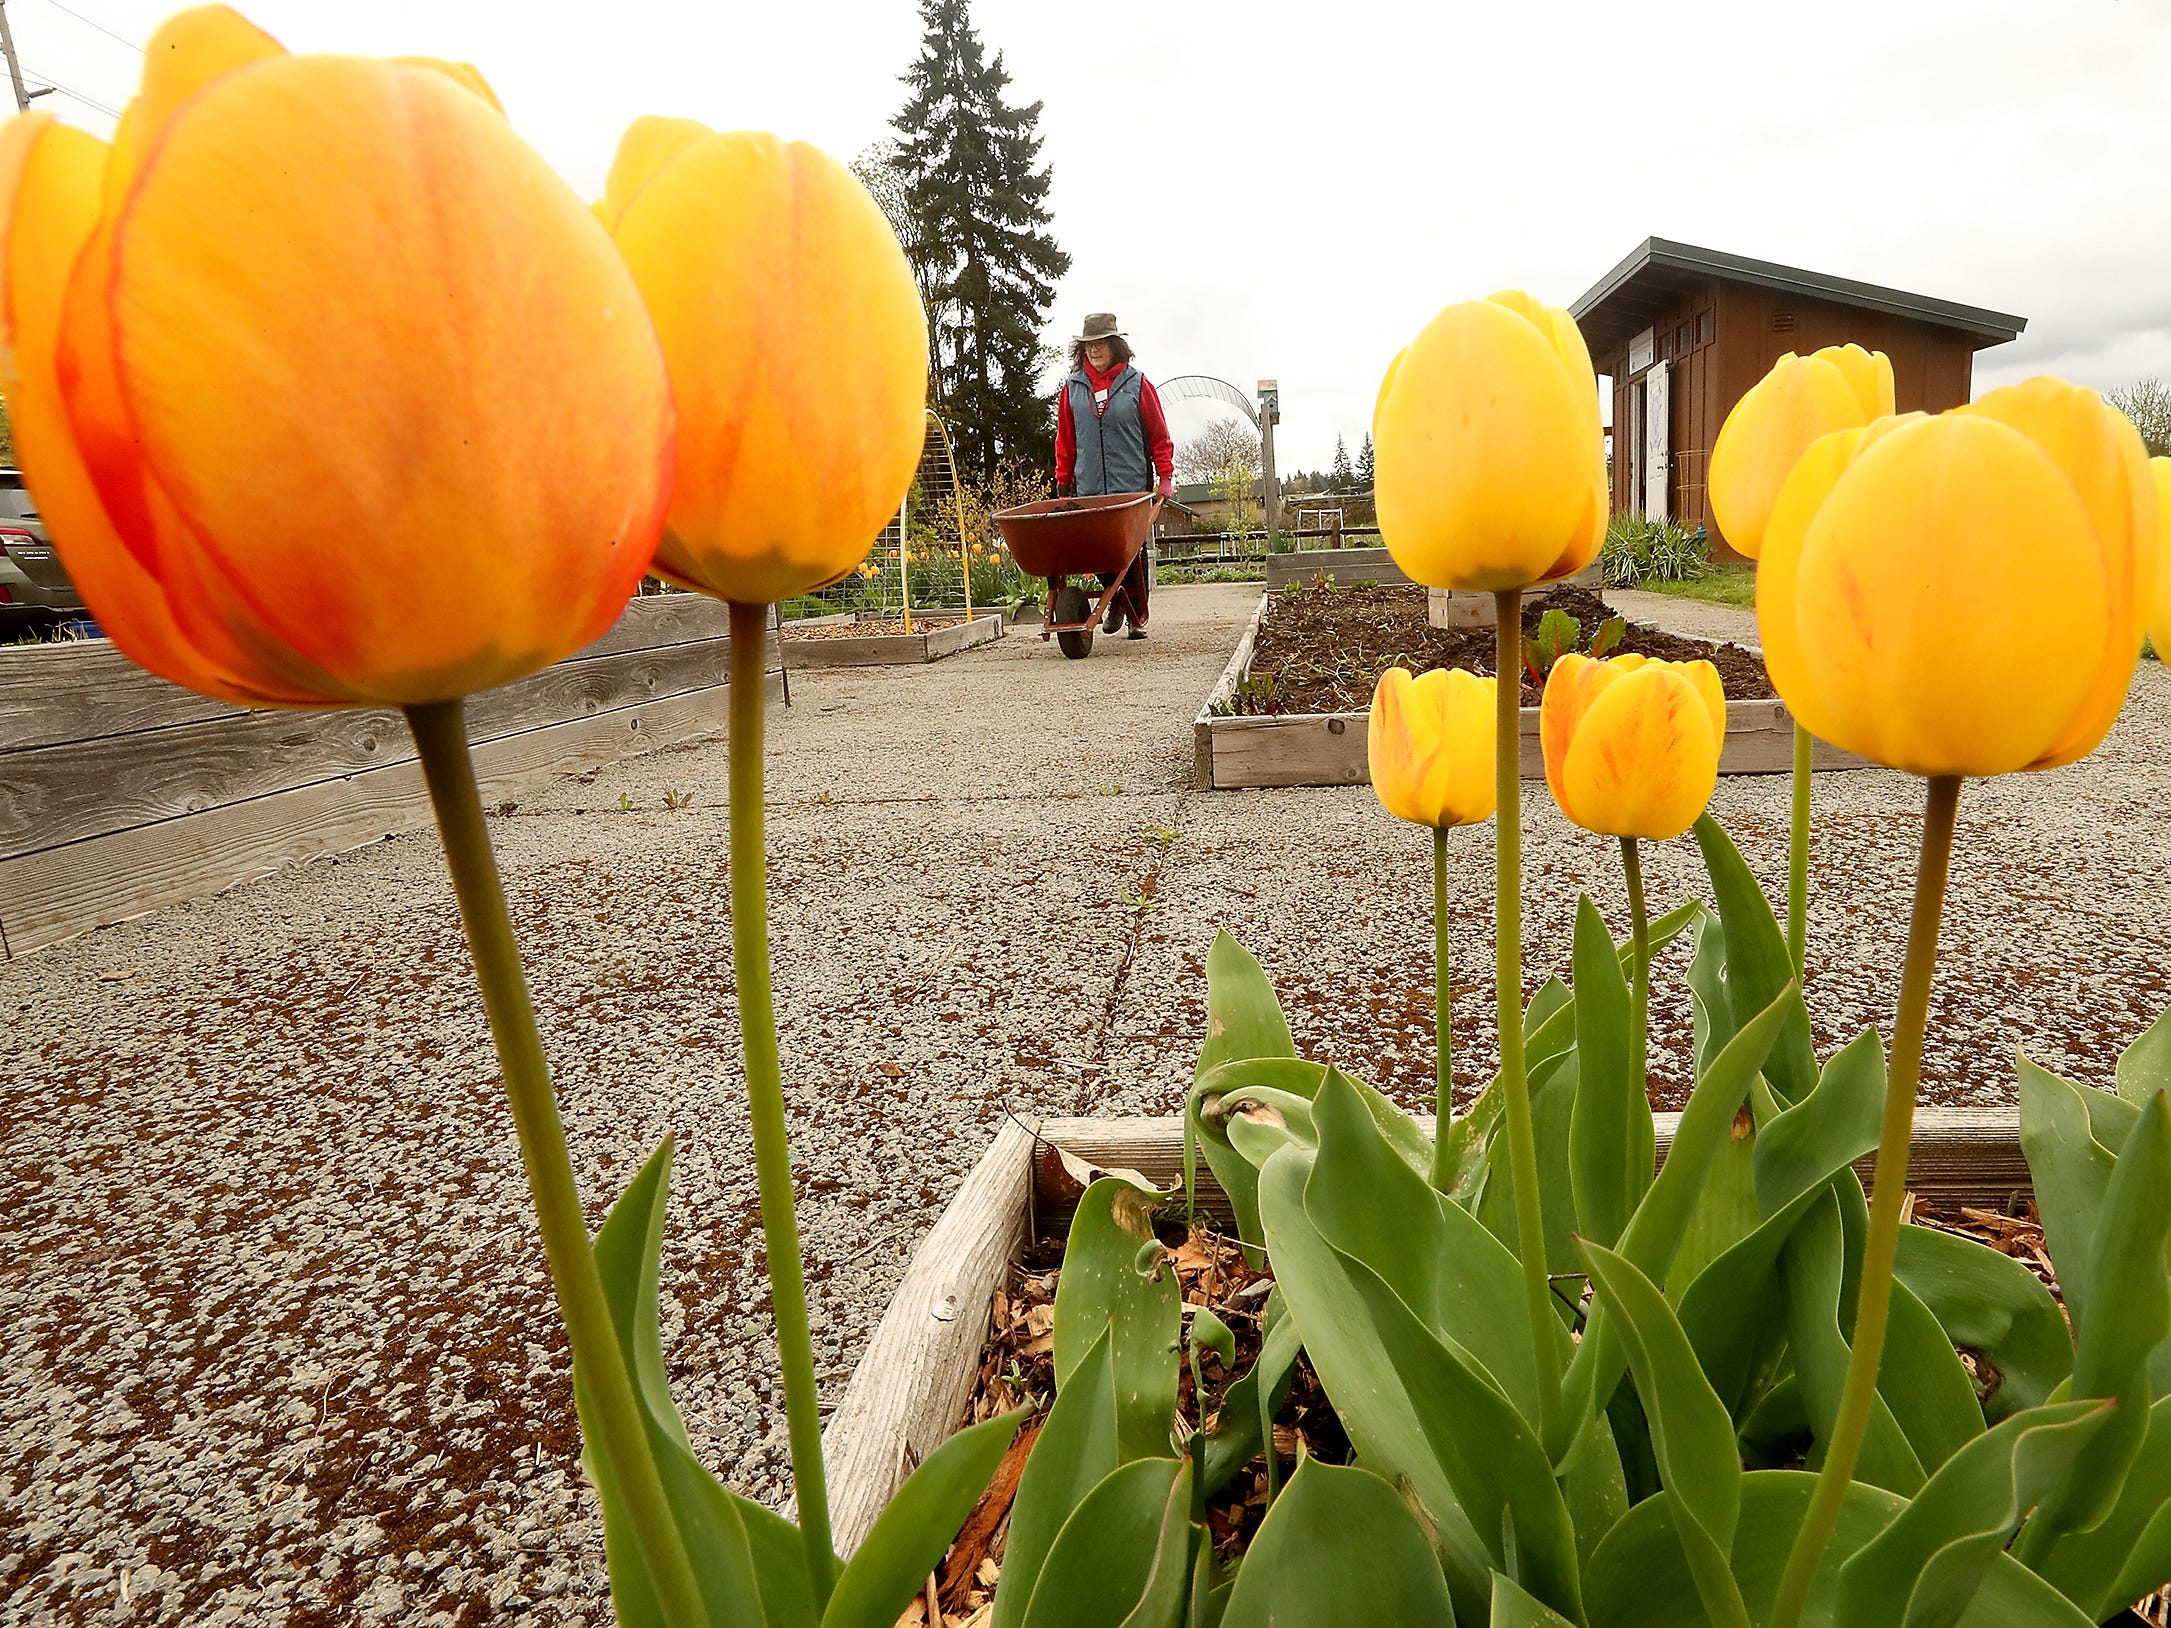 Joanne Crouch , of Olalla, pushes a wheelbarrow of soil past the blooming tulips as she and fellow WSU Kitsap County Extension Master Gardeners get the plant beds ready at Bremerton's Blueberry Park on Tuesday, April 16, 2019.